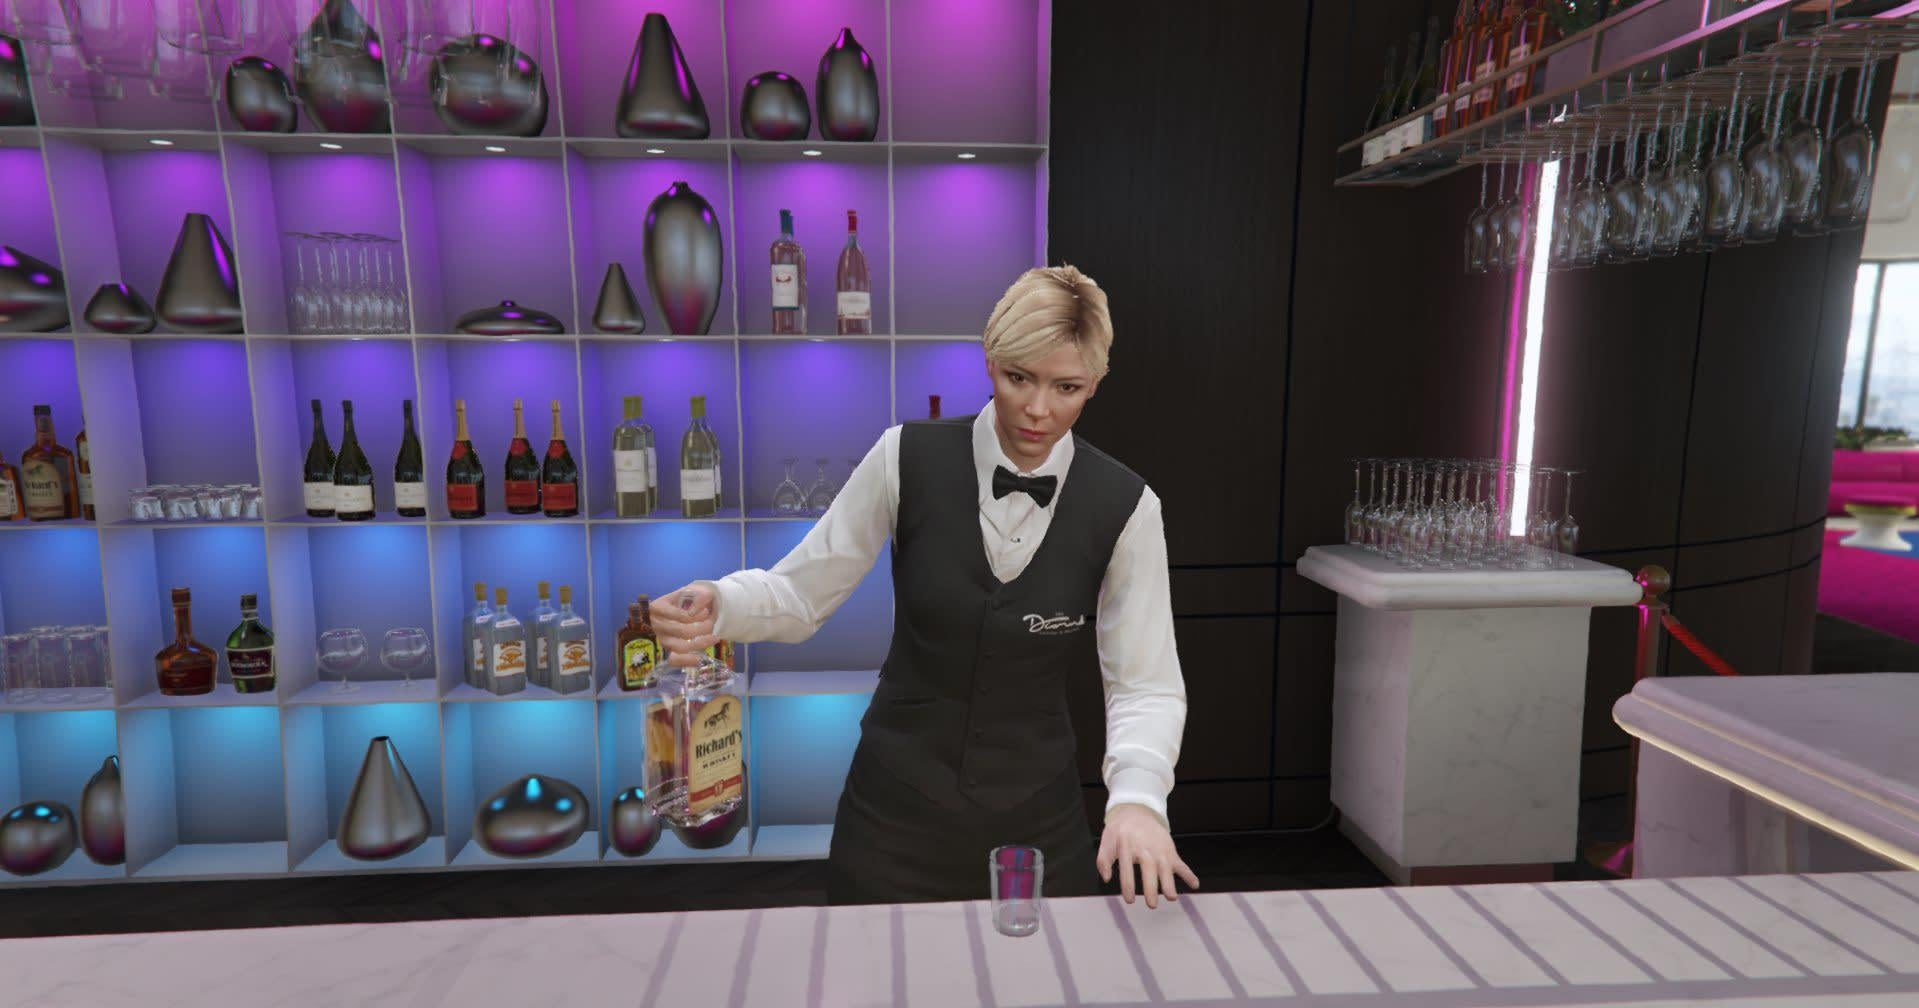 Getting Drunk In GTA Online's Casino Unlocks A New Secret Mission